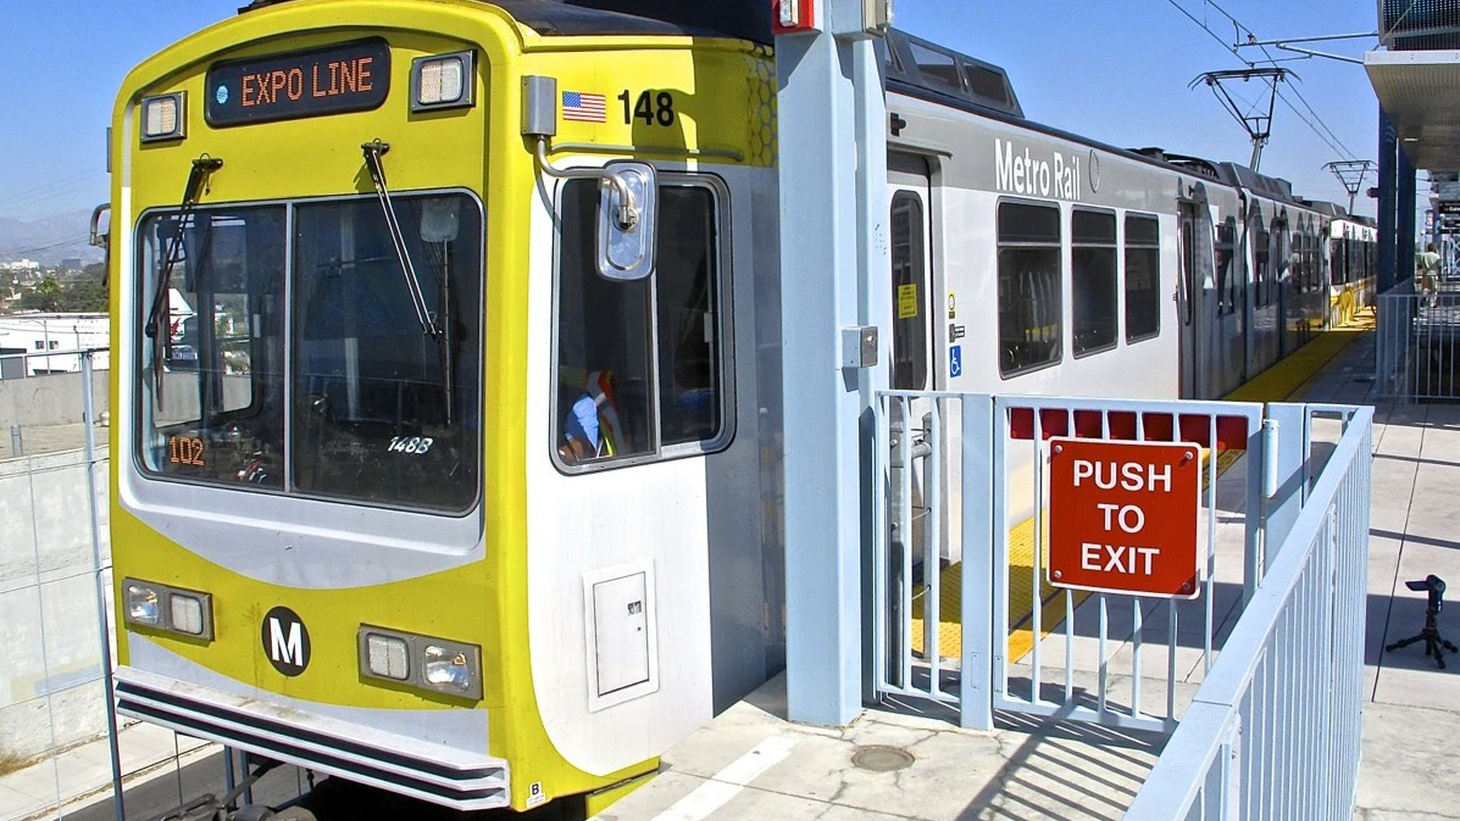 Ridership on the Expo Line rose by nearly 60 percent in the month of June compared to April, but average weekday trips continue to decline. Why, and can the trend be reversed by building close to the train stations?